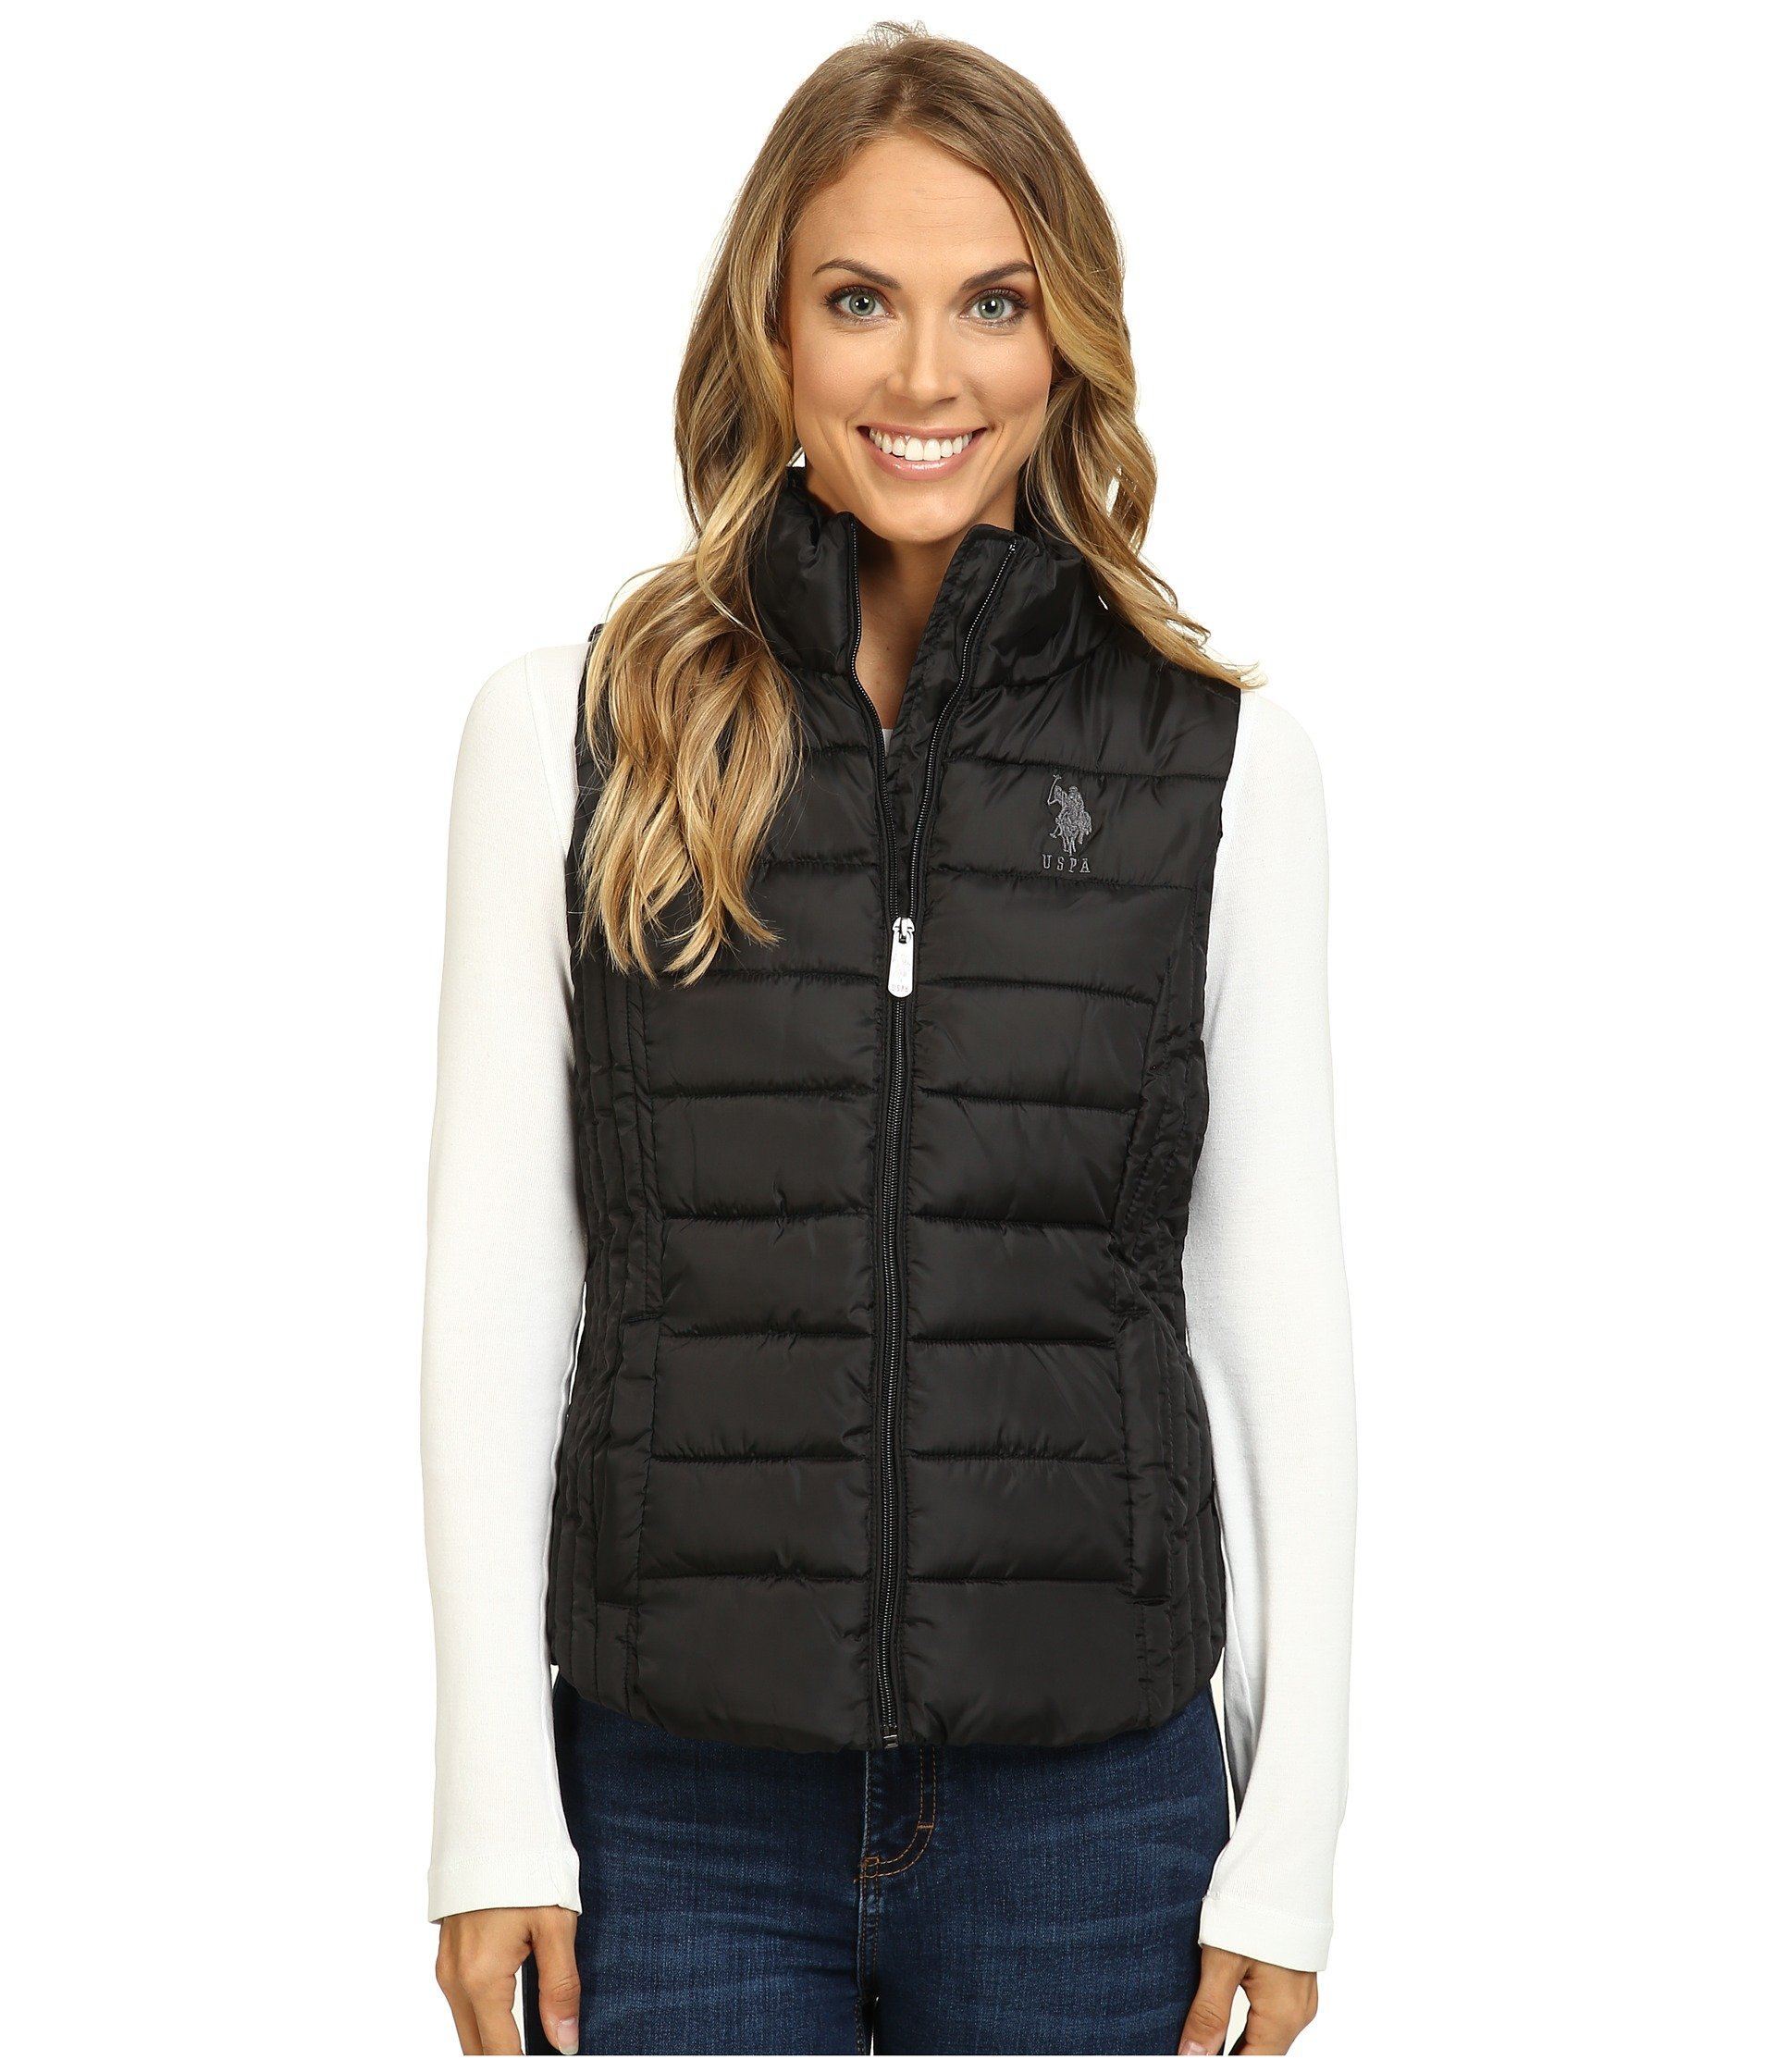 U.S. POLO ASSN. Quilted Vest at 6pm : polo quilted vest - Adamdwight.com